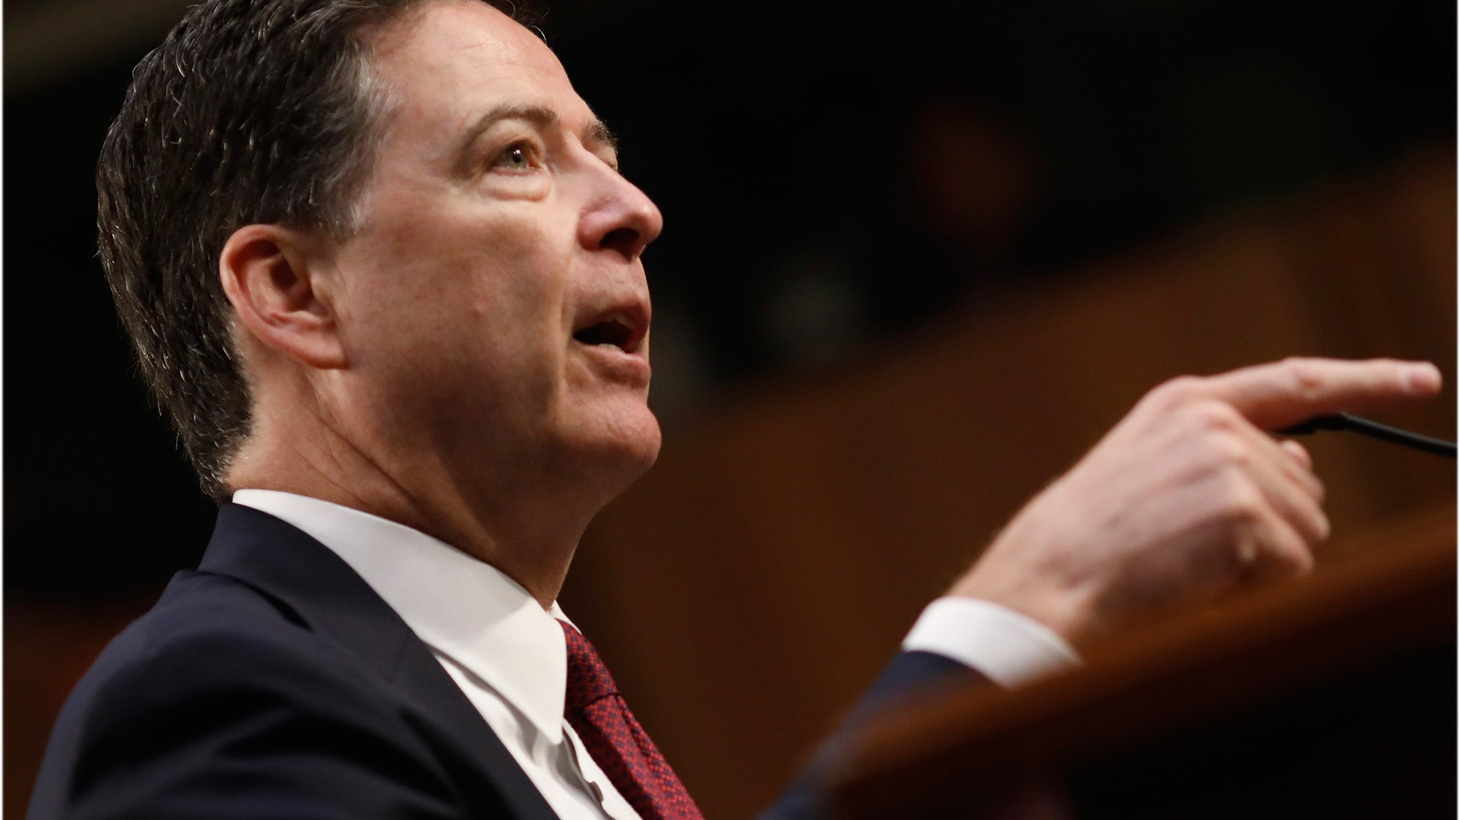 During his testimony Thursday, former FBI Director James Comey accused President Trump and other White House officials of lying when they said the FBI was in disarray and its staff had lost confidence in him. President Trump's lawyer said Comey was wrong -- that the president never asked for his loyalty, and never asked him to back off the investigation into former NSA director Michael Flynn.